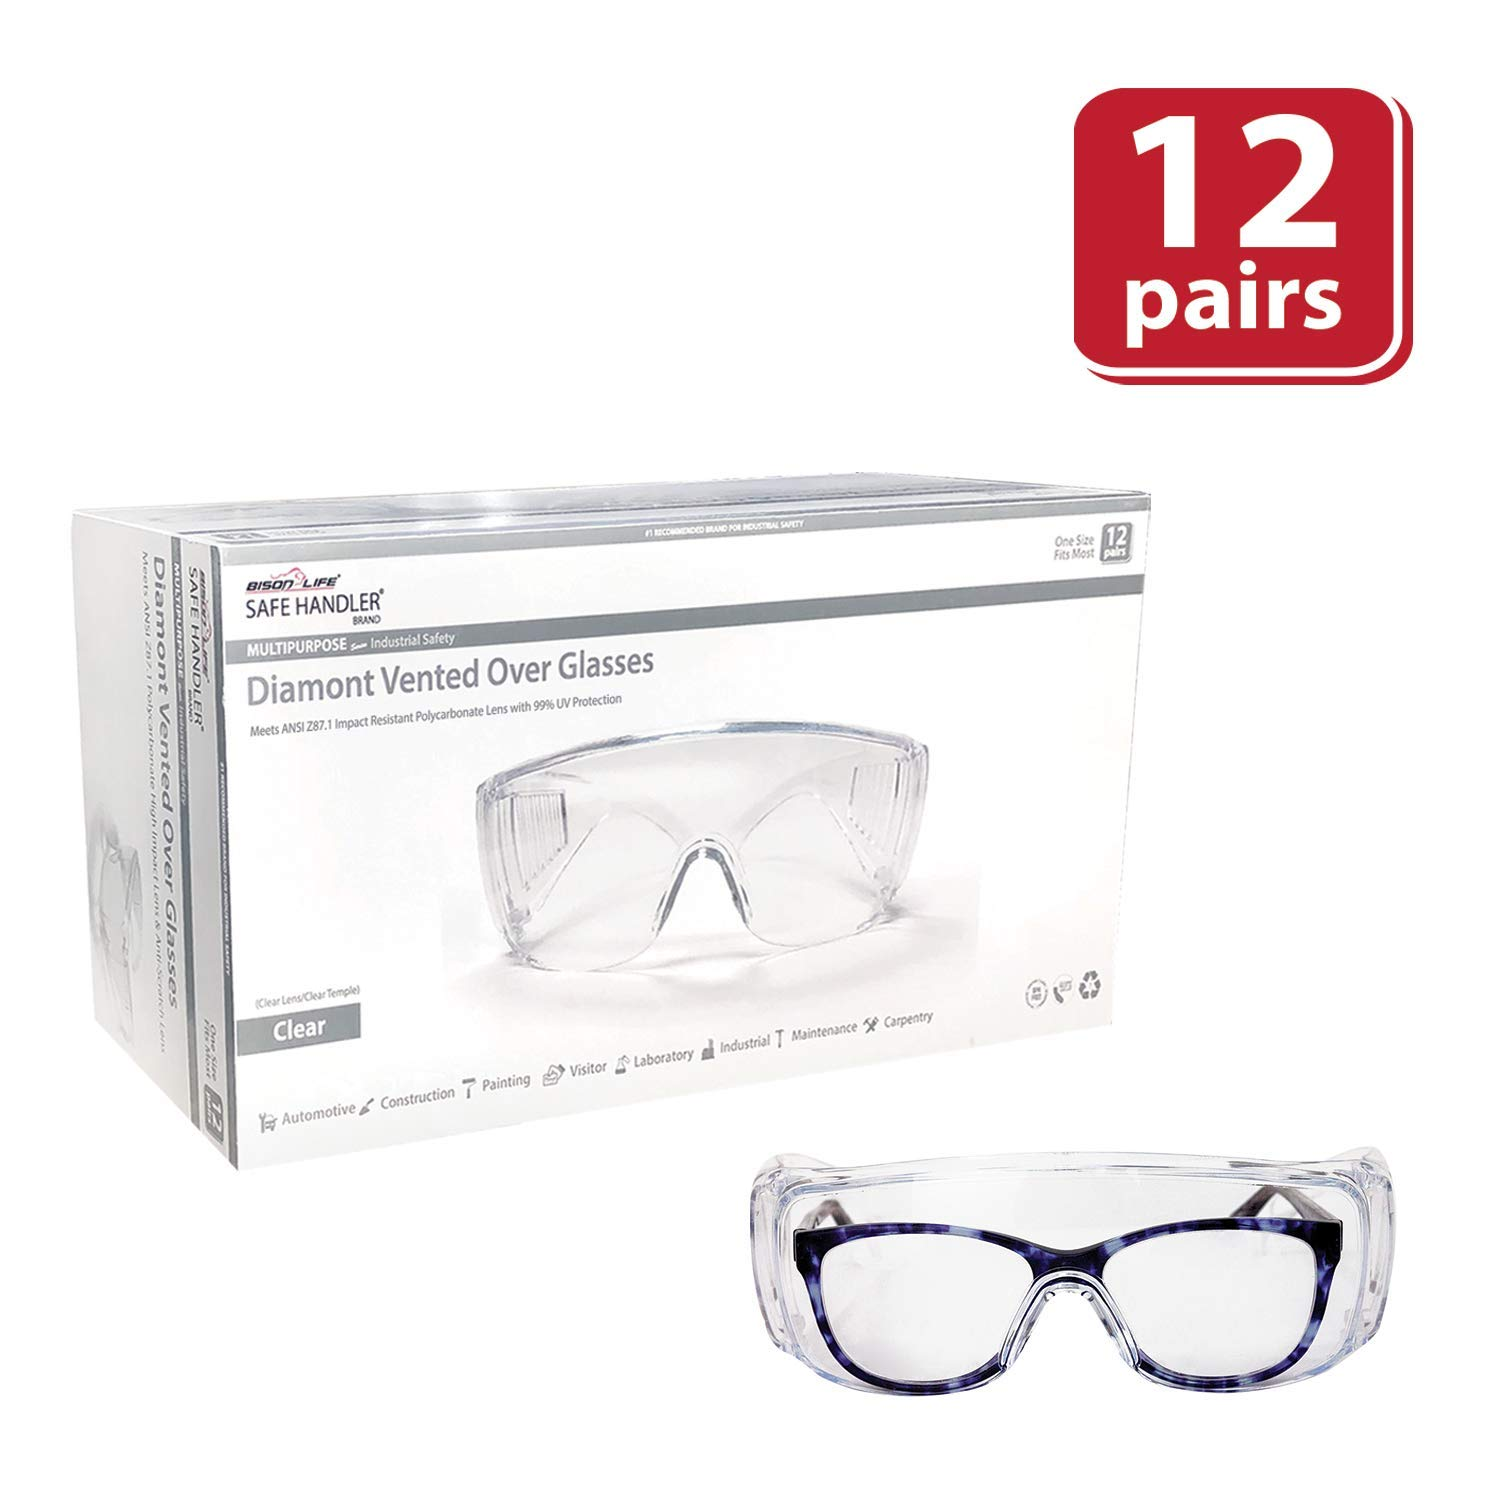 SAFE HANDLER Diamont Vented Over Glasses 12 PAIRS | Meets ANSI Z87.1, Impact Resistant Polycarbonate Lens, 99% UV Protection (1 box/12 Pairs) by Safe Handler